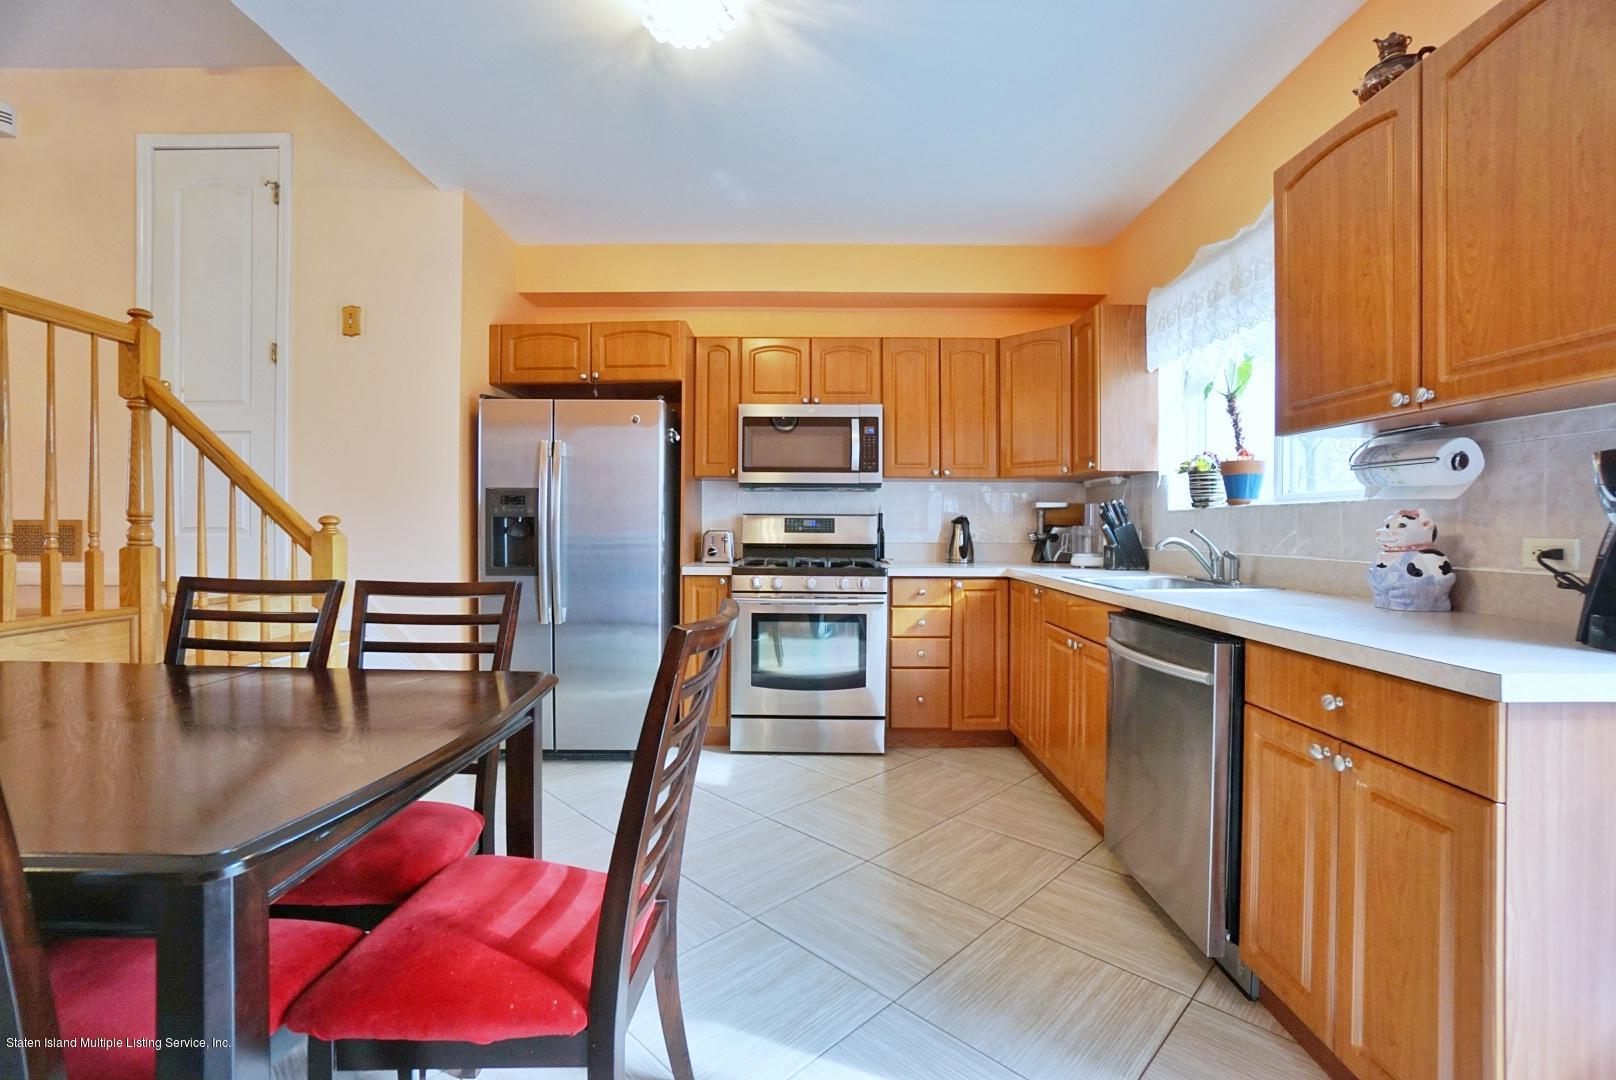 Single Family - Attached 30 Cranberry Court  Staten Island, NY 10309, MLS-1135421-9